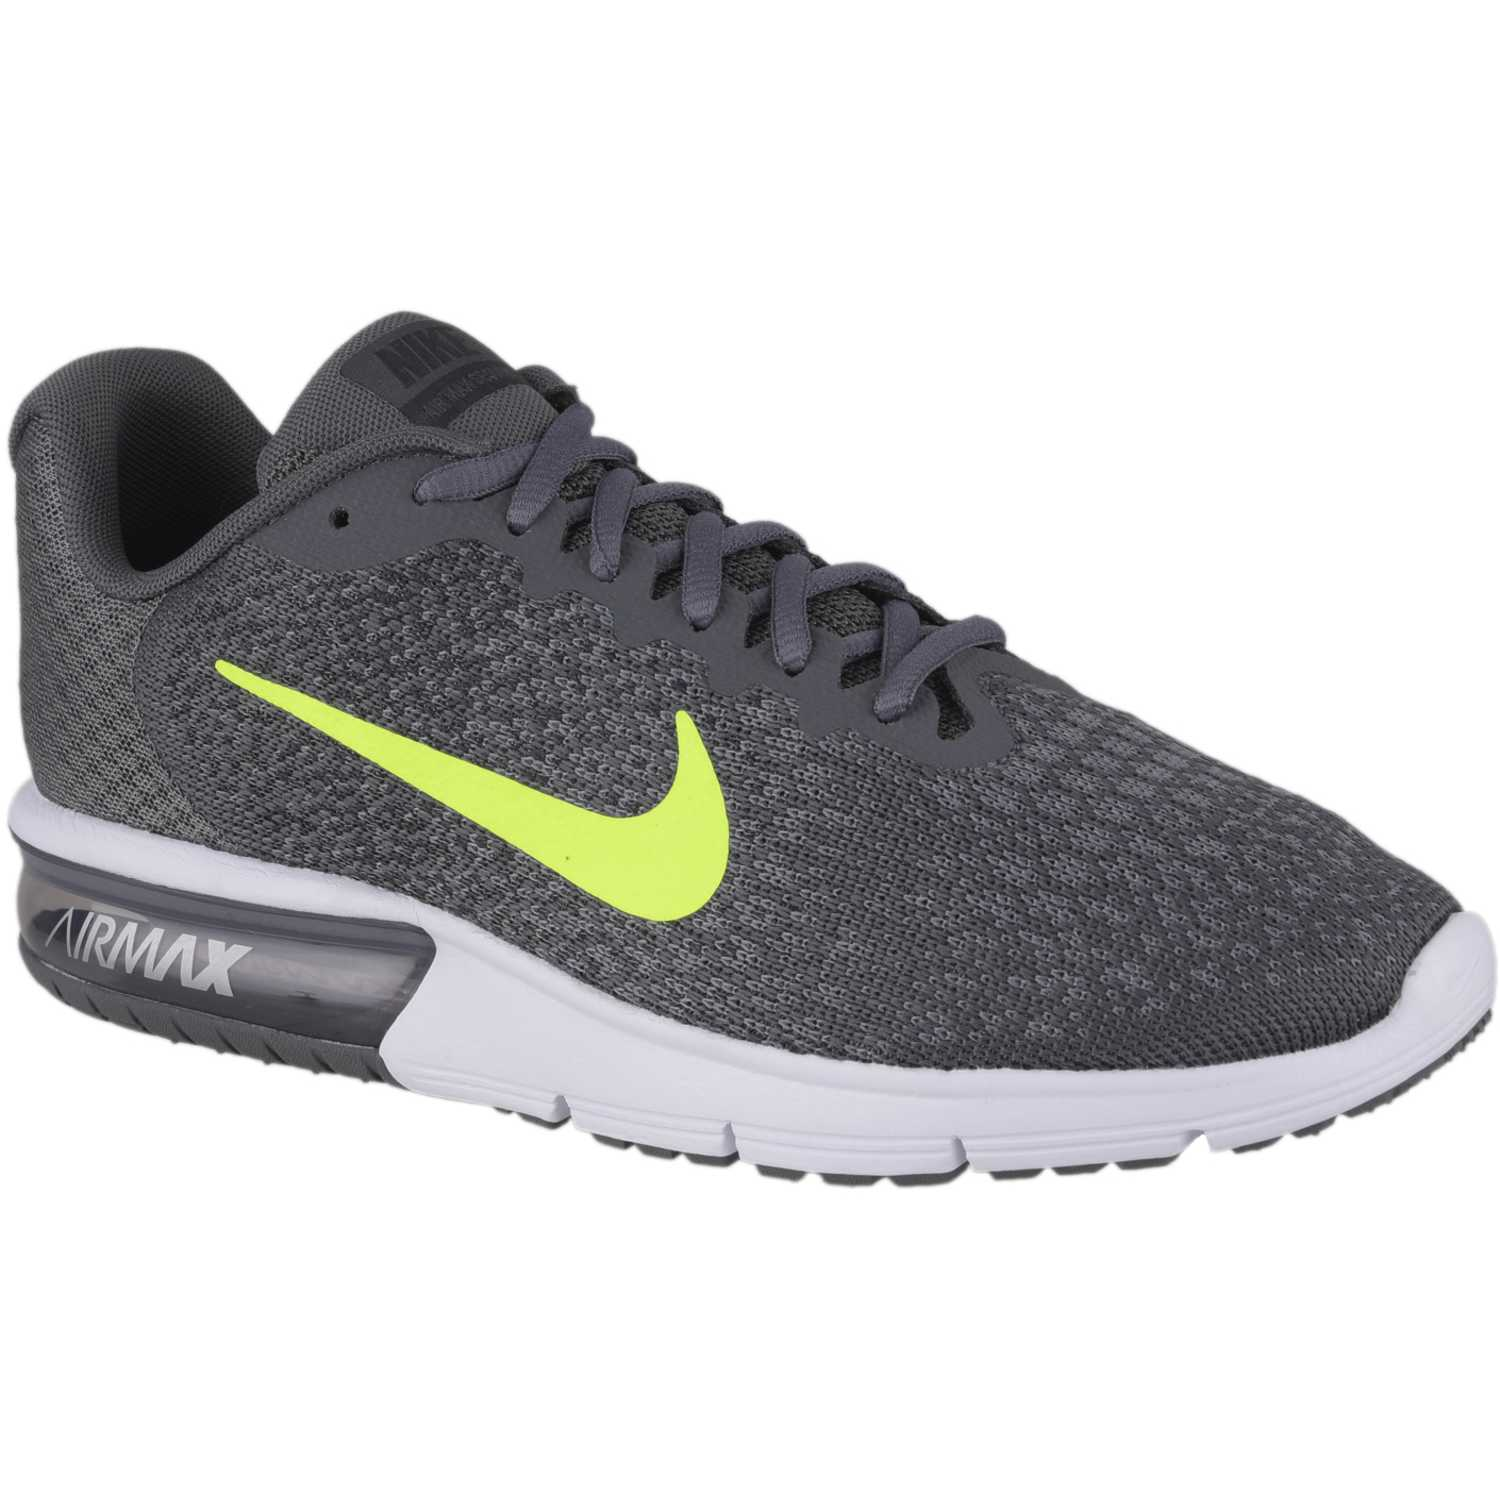 Nike nk air max sequent 2 Negro / limón Running en pista